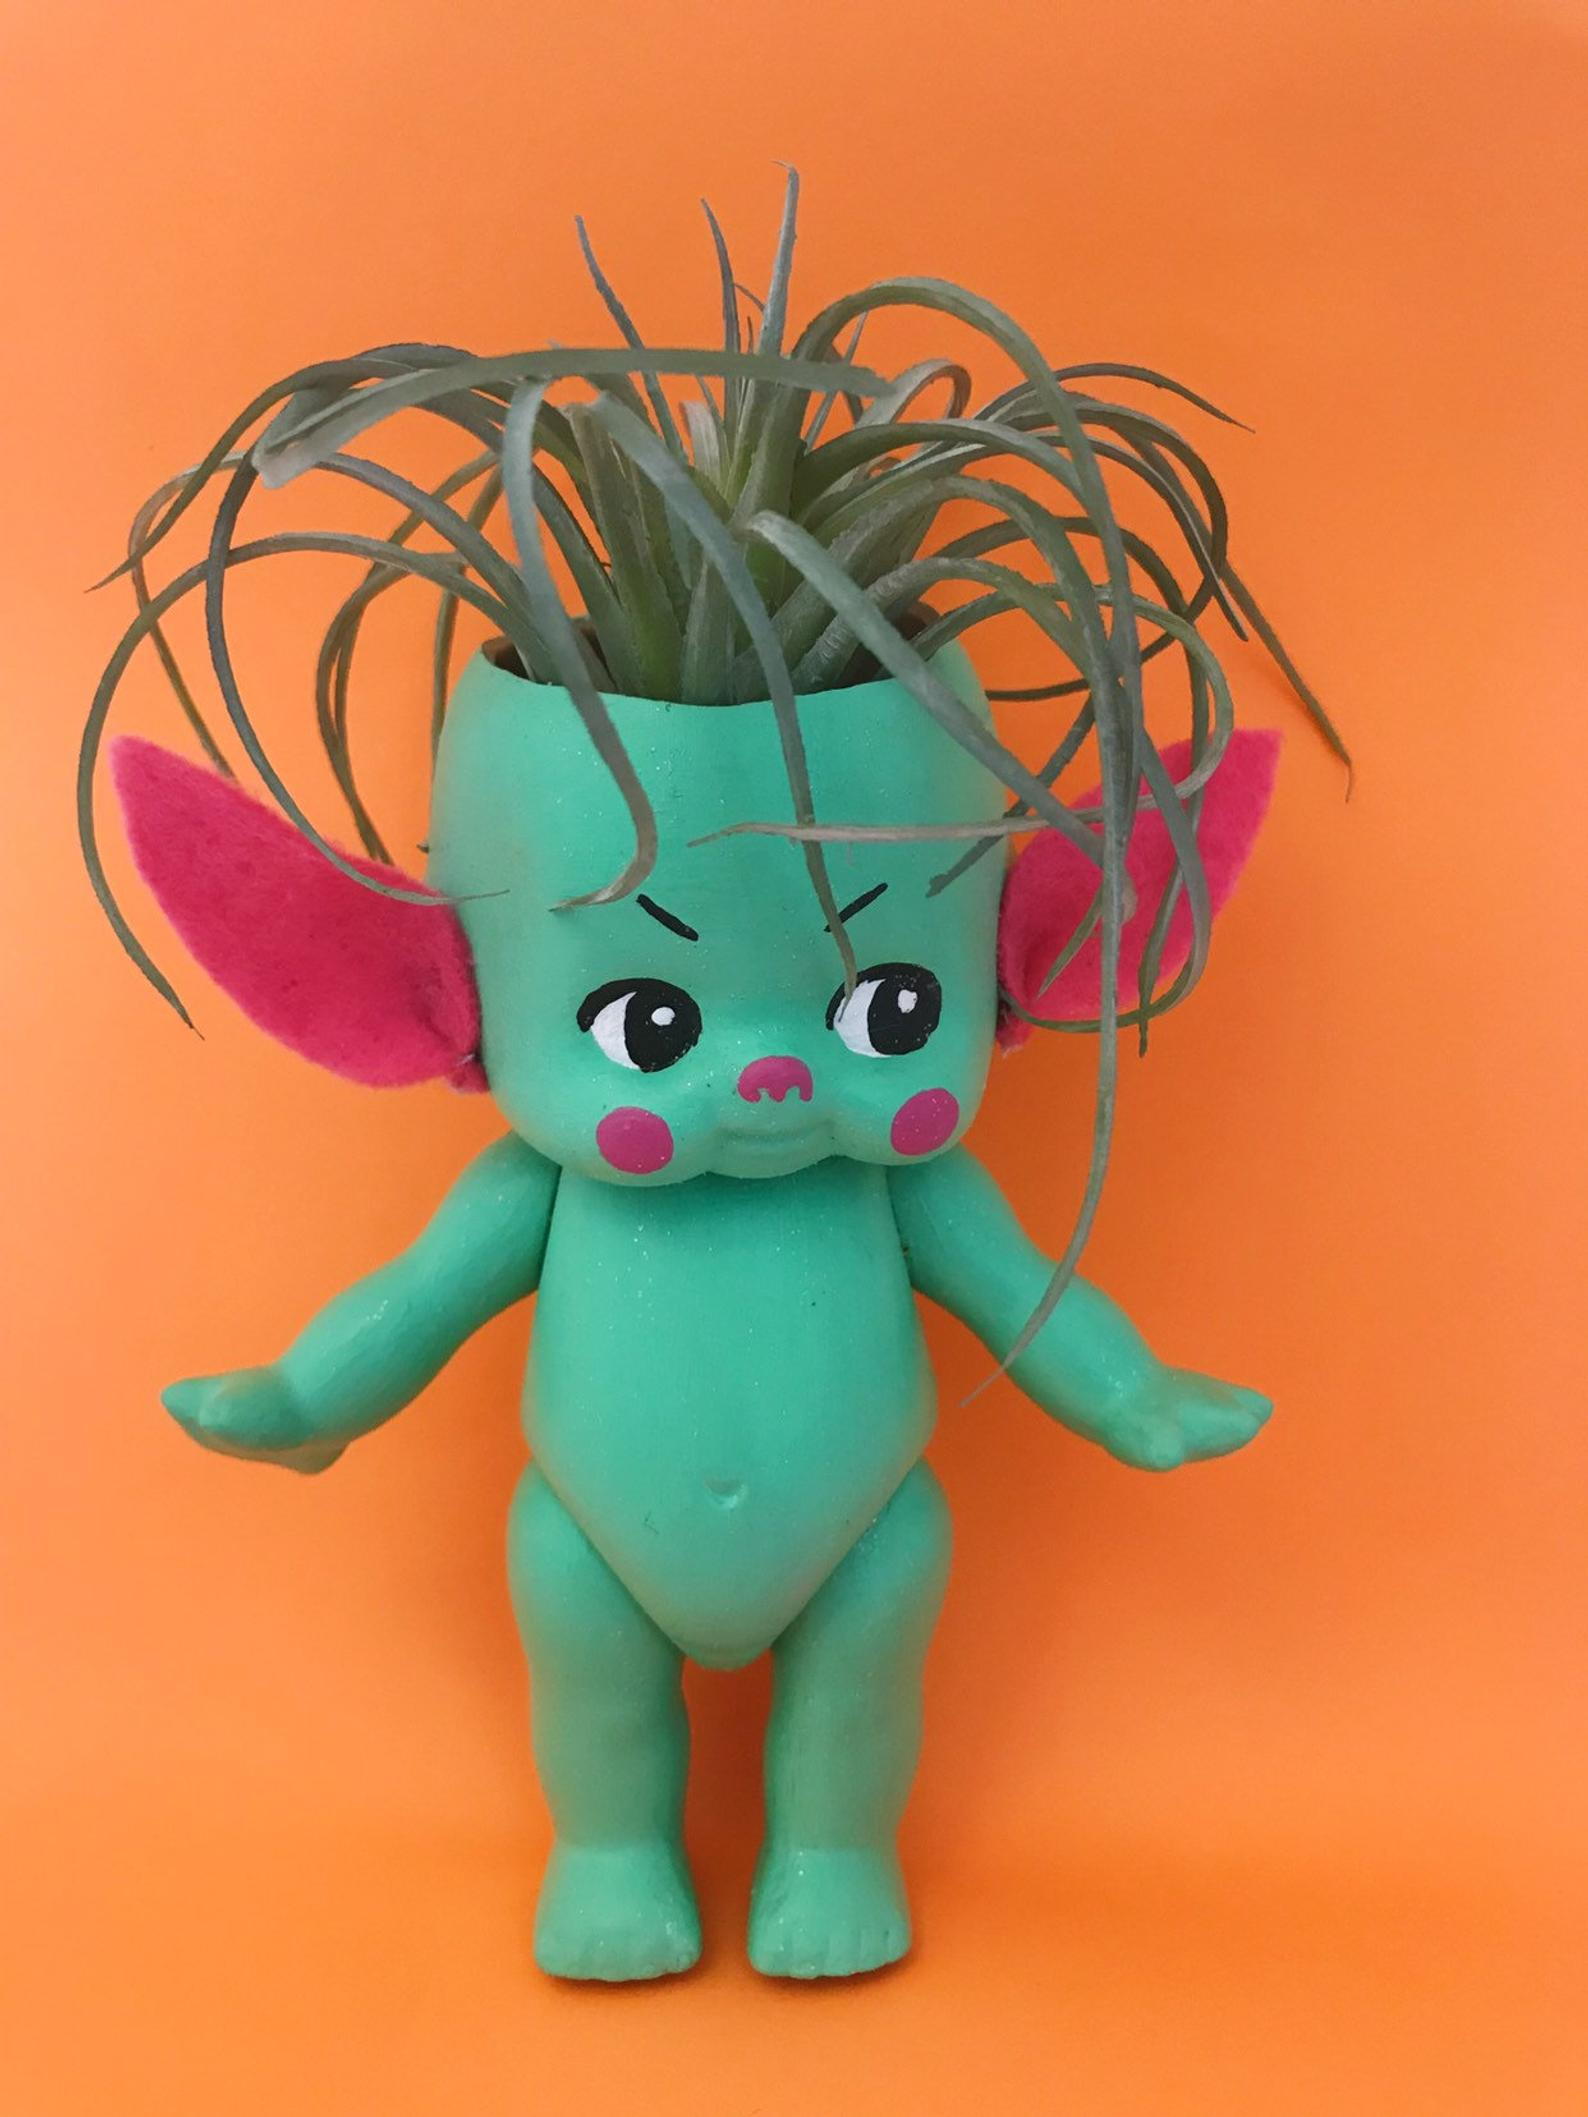 Pink + Green Alien Kewpie Planter